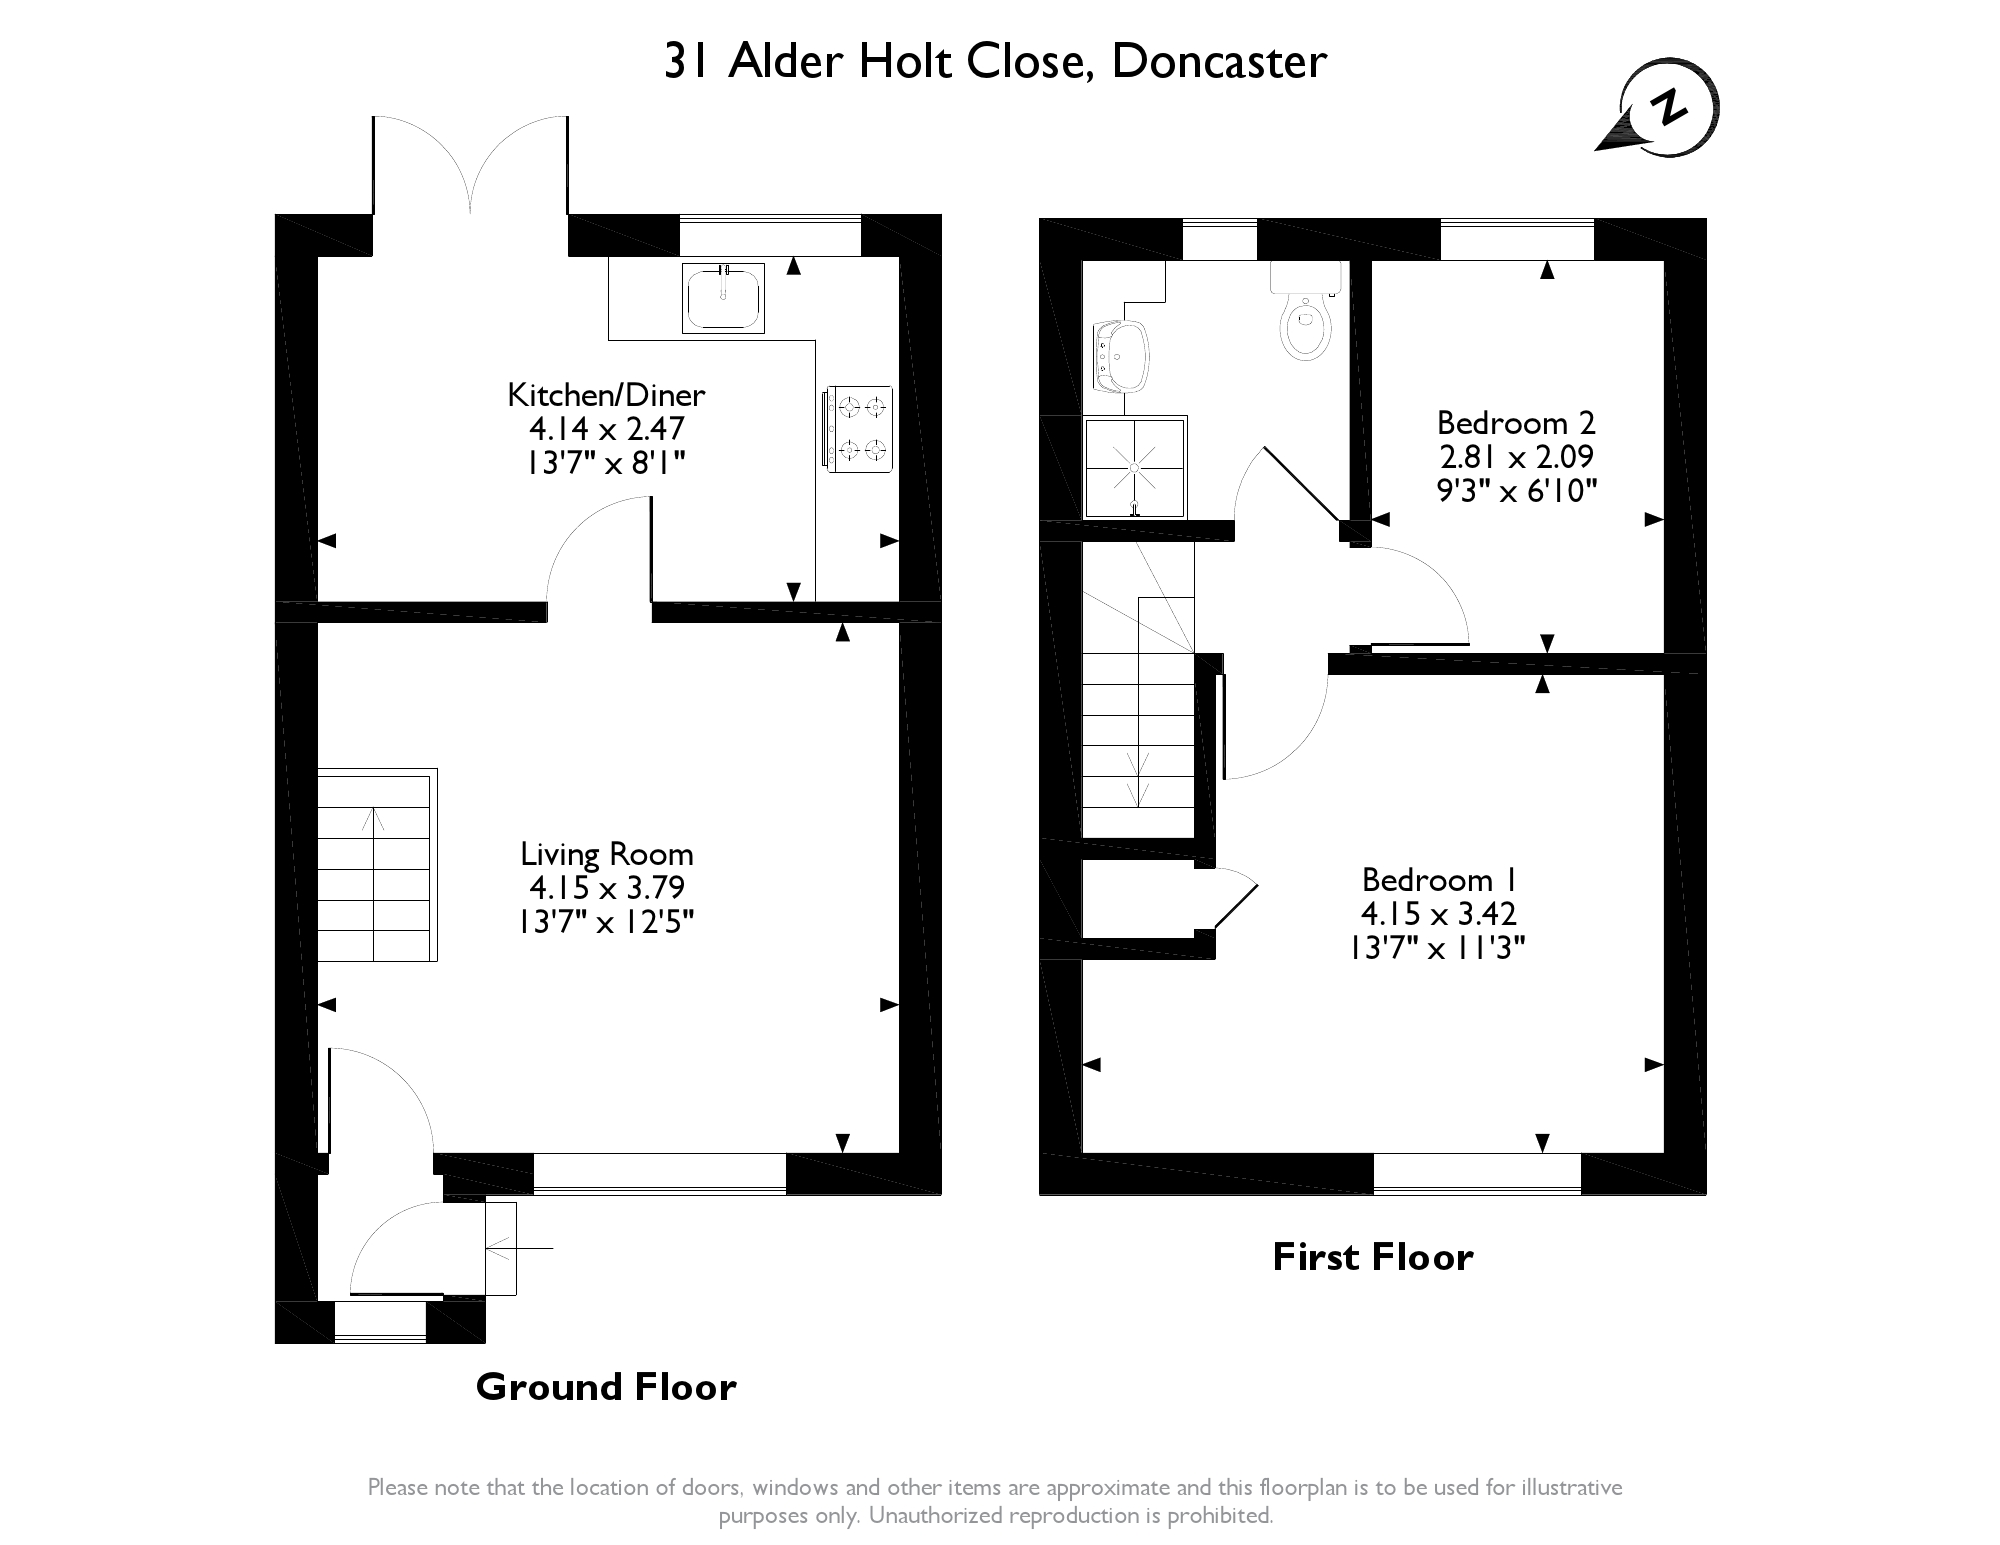 Alder Holt Close, Doncaster, DN3 floor plan